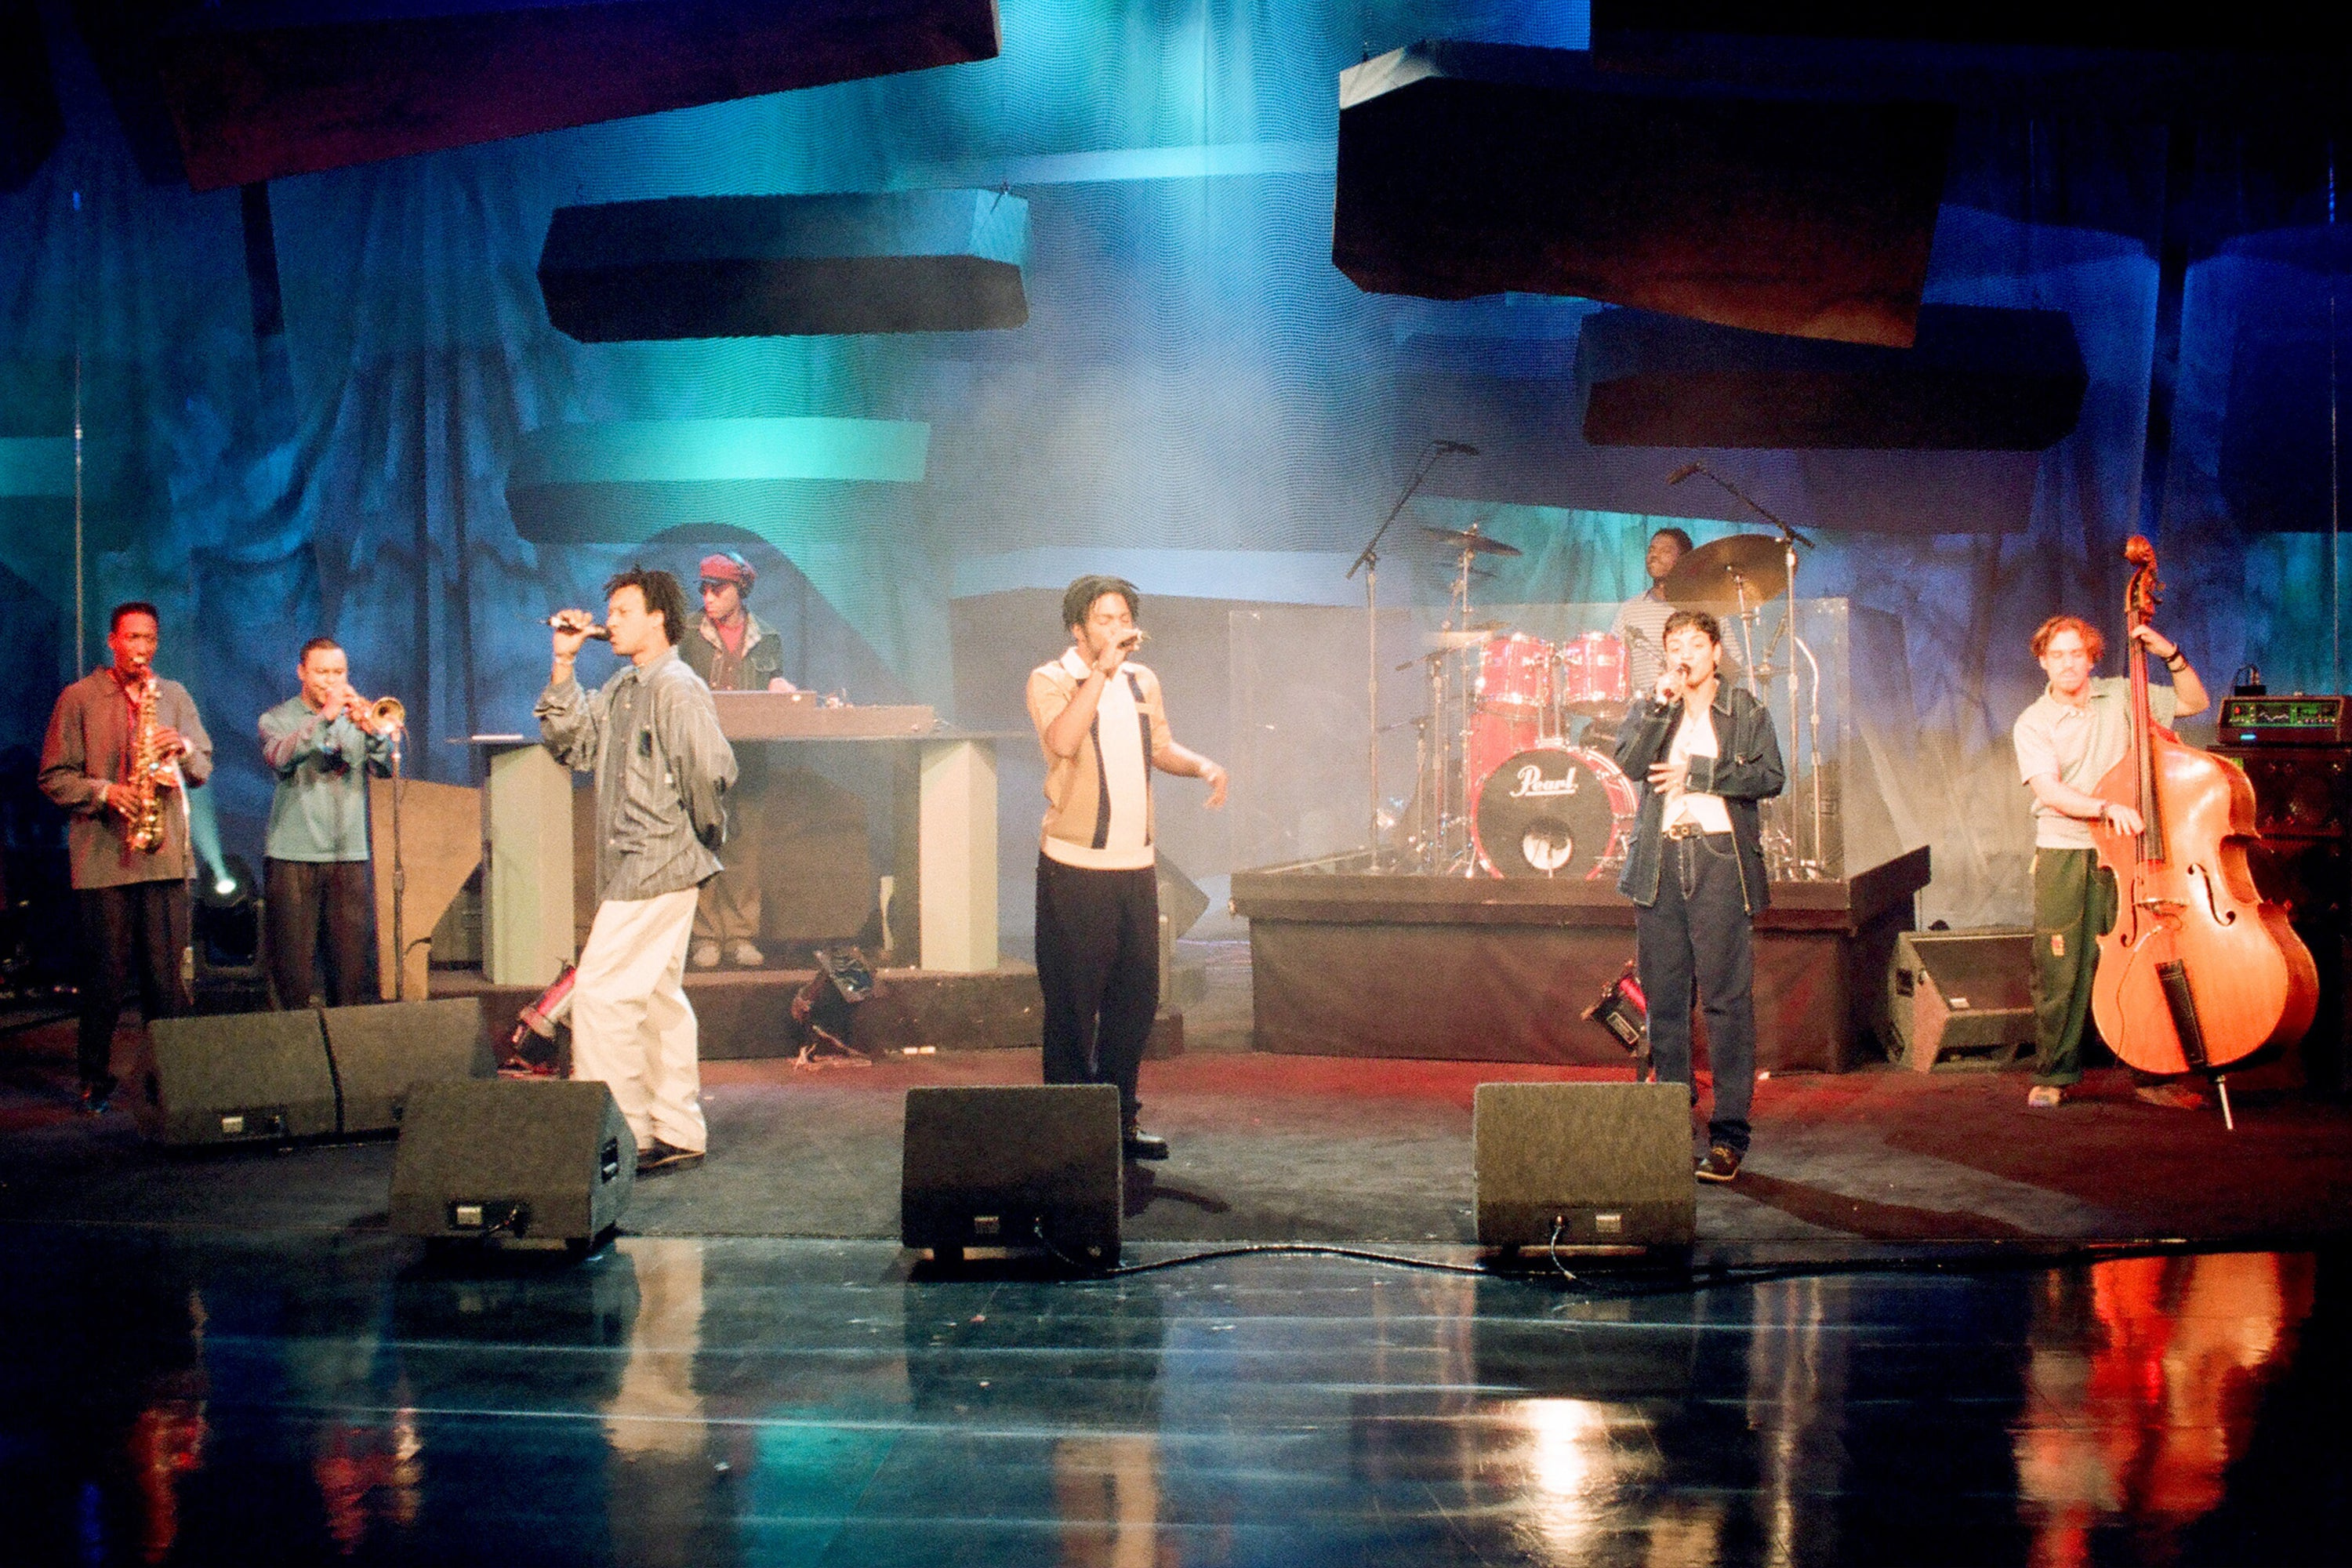 THE TONIGHT SHOW WITH JAY LENO -- Episode 214 -- Pictured: (l-r) Butterfly; Doodlebug and Ladybug Mecca of musical guest Digable Planets perform on April 29, 1993 -- (Photo by: Margaret Norton/NBCU Photo Bank/NBCUniversal via Getty Images via Getty Images)